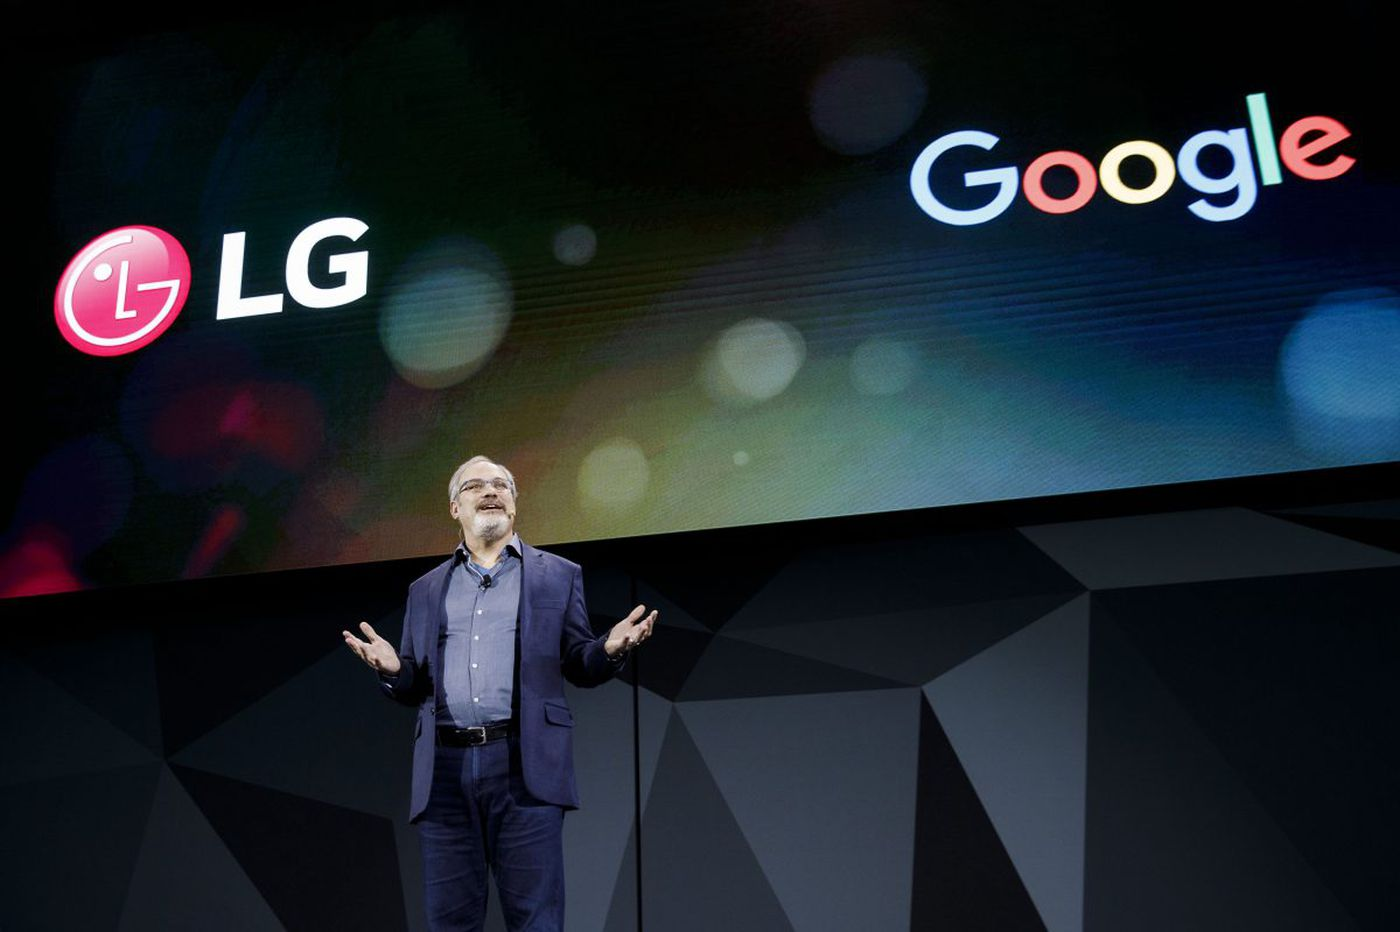 In rare showing, Google arrives at CES to battle Alexa and Siri